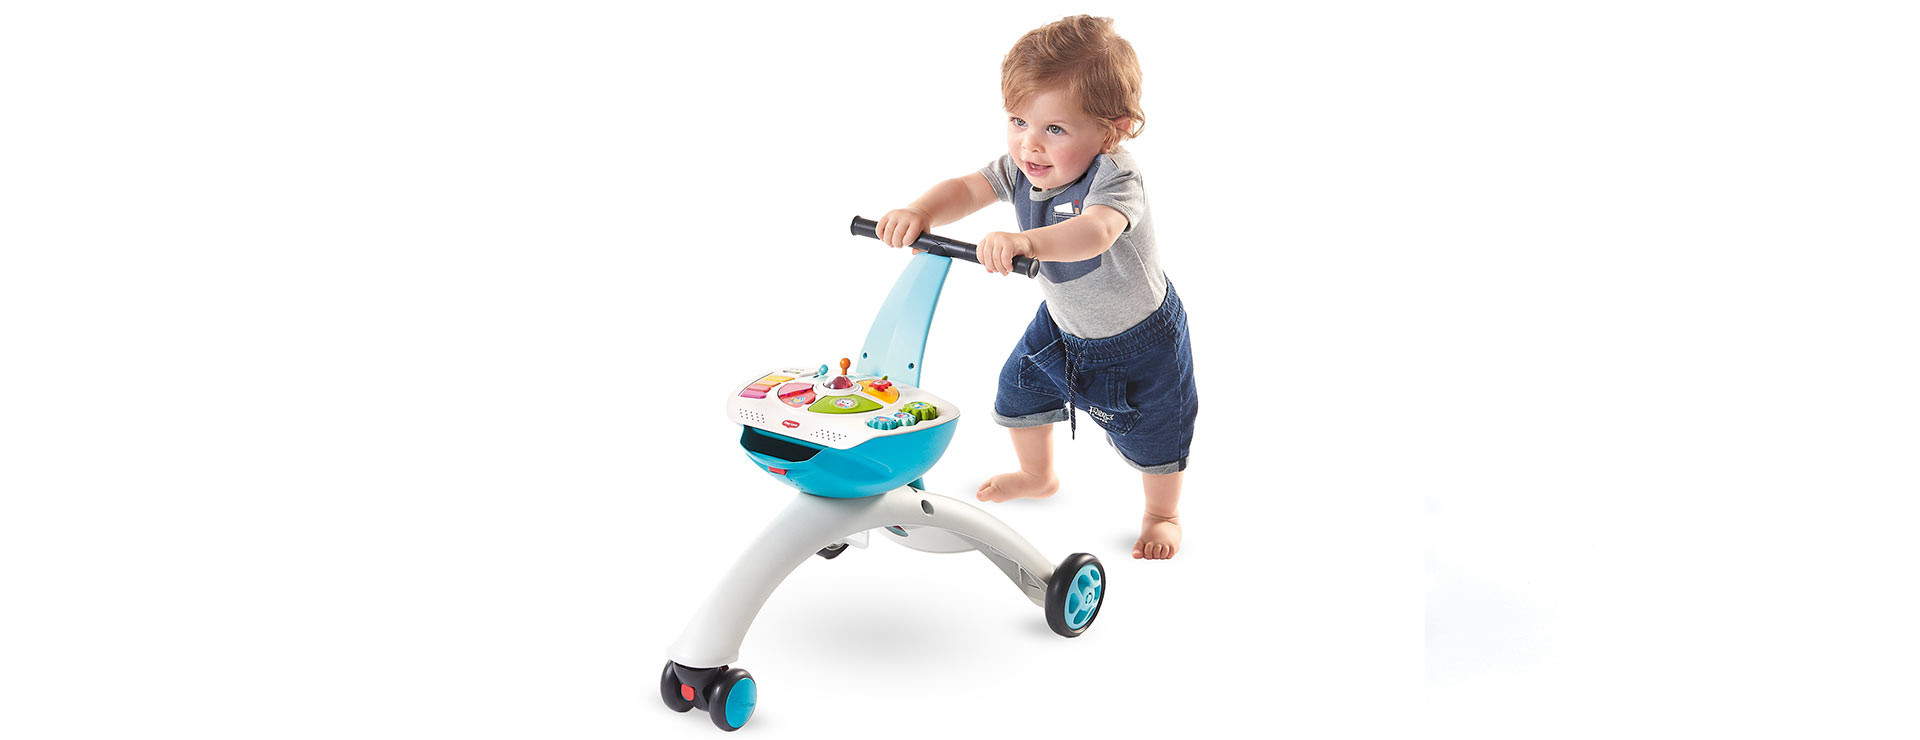 Walk-behind mode enables baby to start their journey into the world of walking